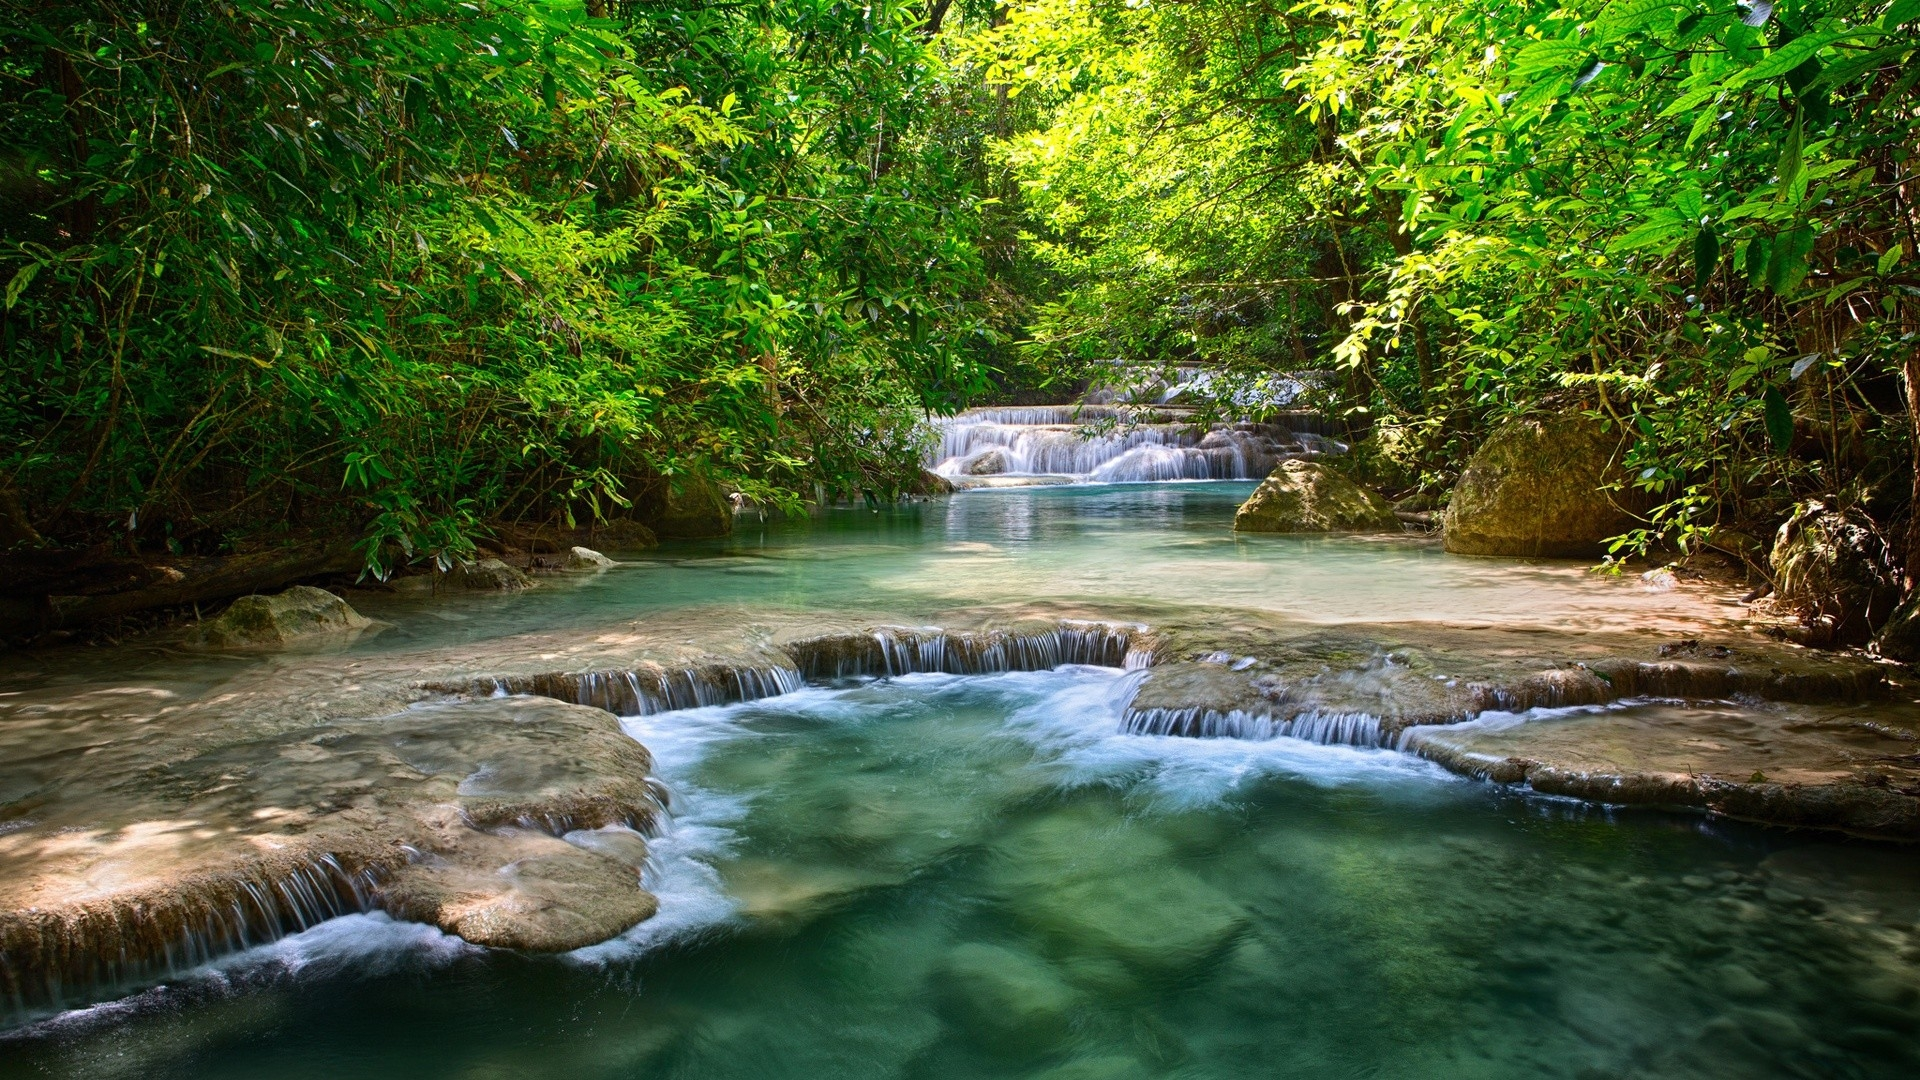 Hd wallpaper river - River With Small Rapids Hd Desktop Wallpaper Hd Desktop Wallpaper